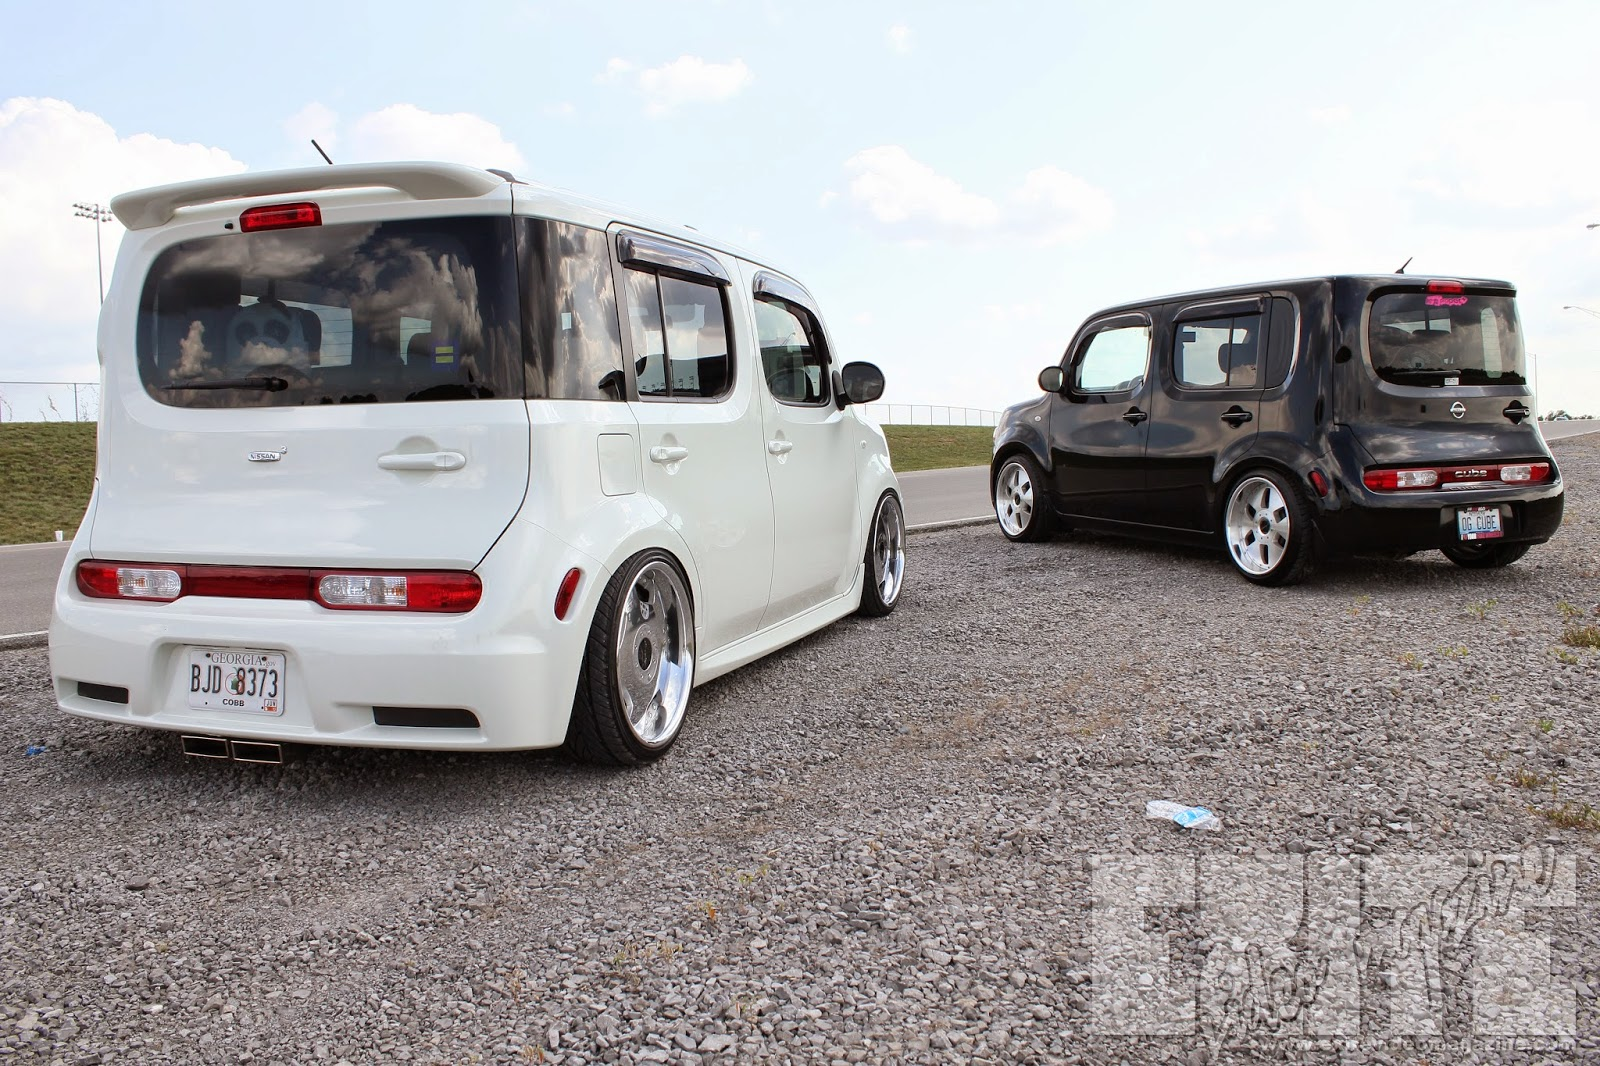 Toyota toyota cube : TBT: Yin and Yang | eXite Video Magazine